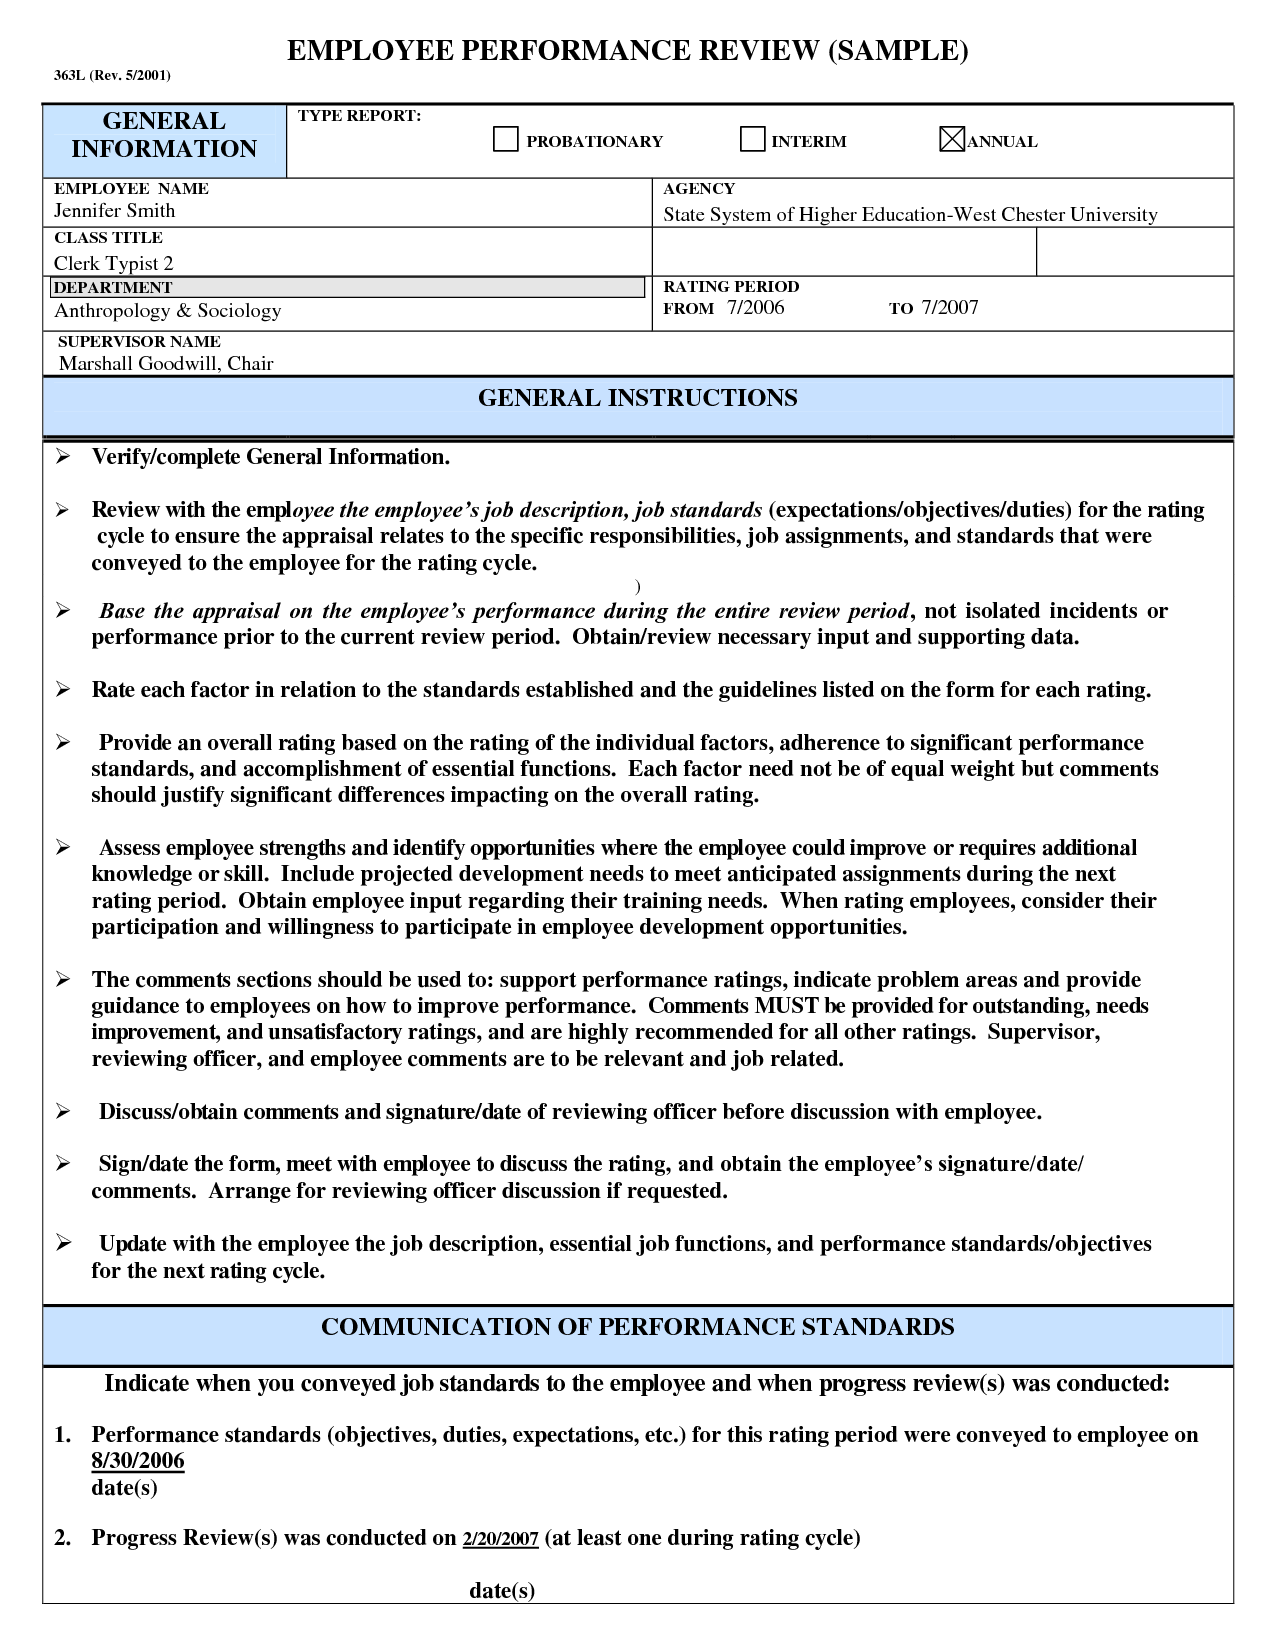 a21a4f656afe46ef7268e8f2aaf6c93d Sample Employee Performance Goals Examples on evaluation form, appraisal wording example, write up, appreciation letter, business perspective, write up template,